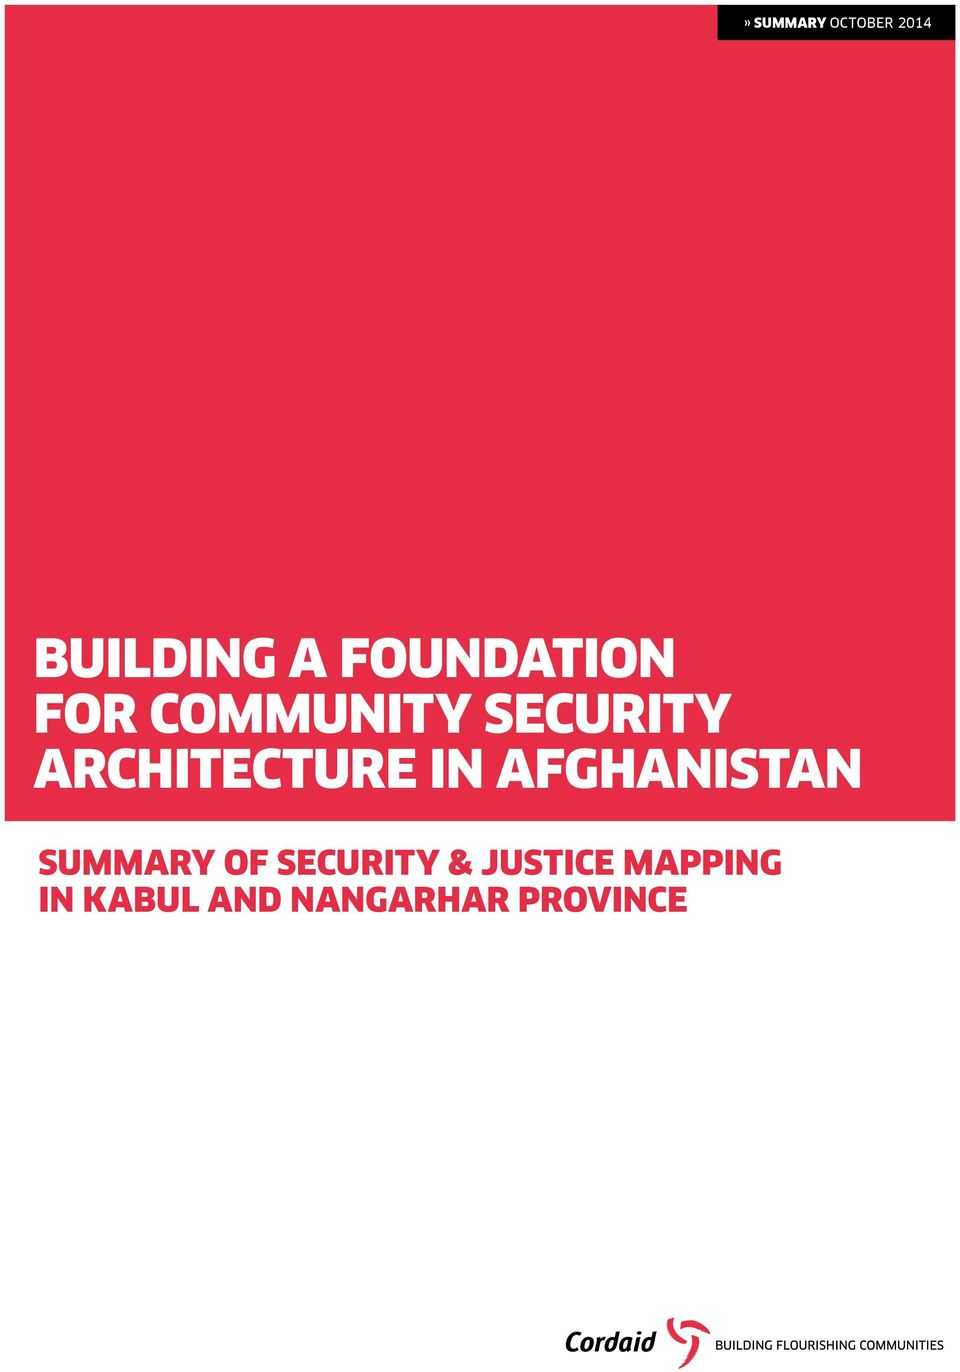 ARCHITECTURE IN AFGHANISTAN SUMMARY OF